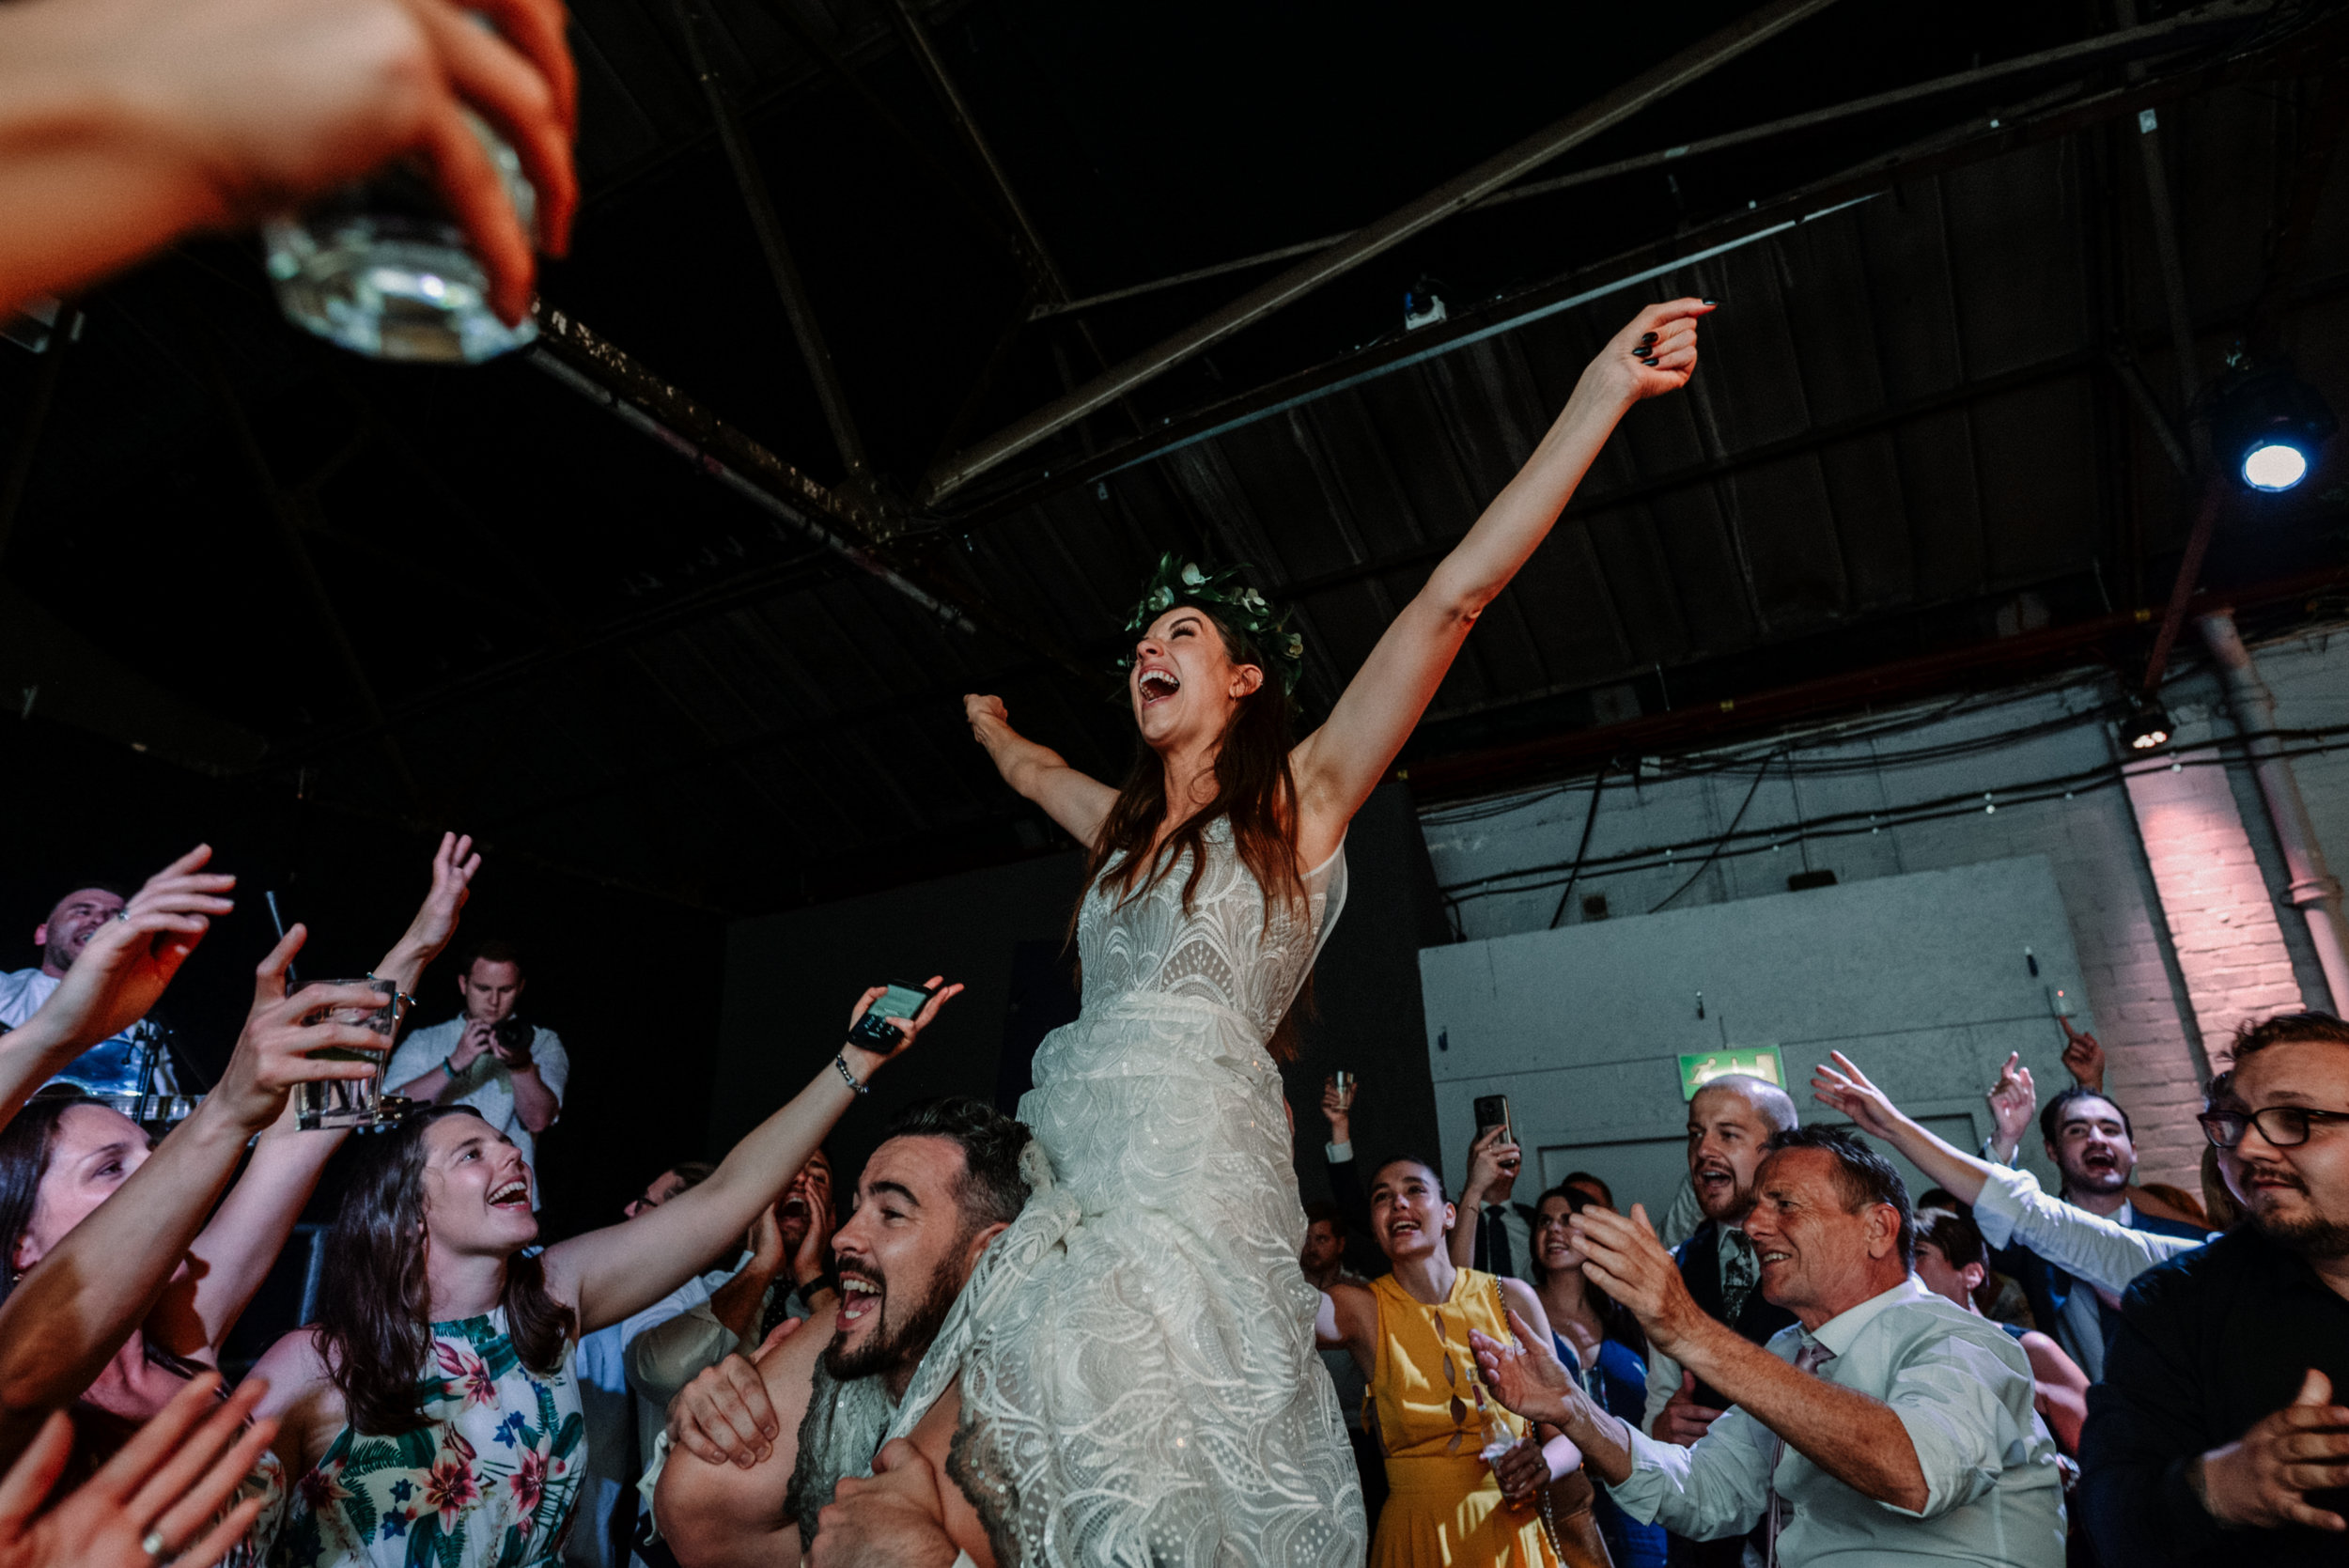 Highlights of Craig and Emily // Live Gig meets festival wedding extravaganza in Constellations - Liverpool